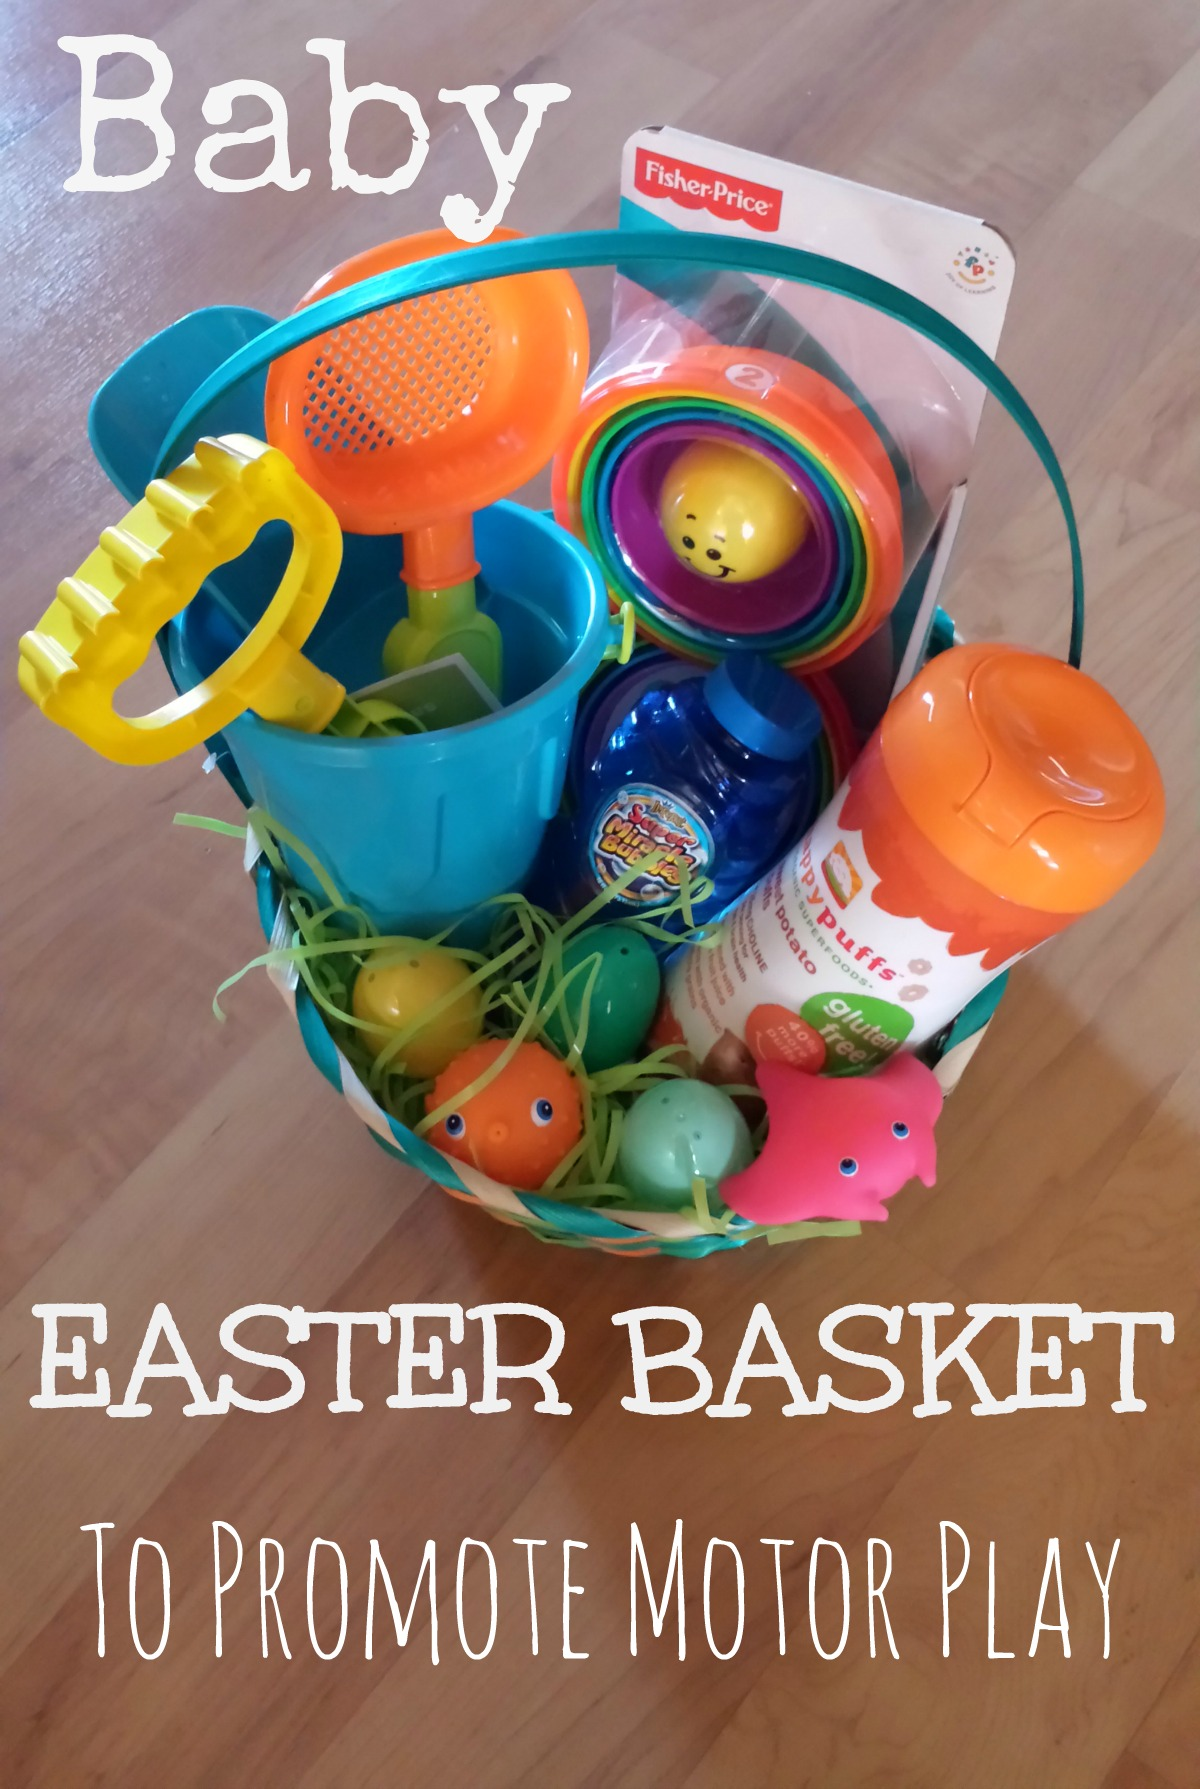 Easter basket for baby to promote motor development pink oatmeal easter basket to promote motor play negle Choice Image